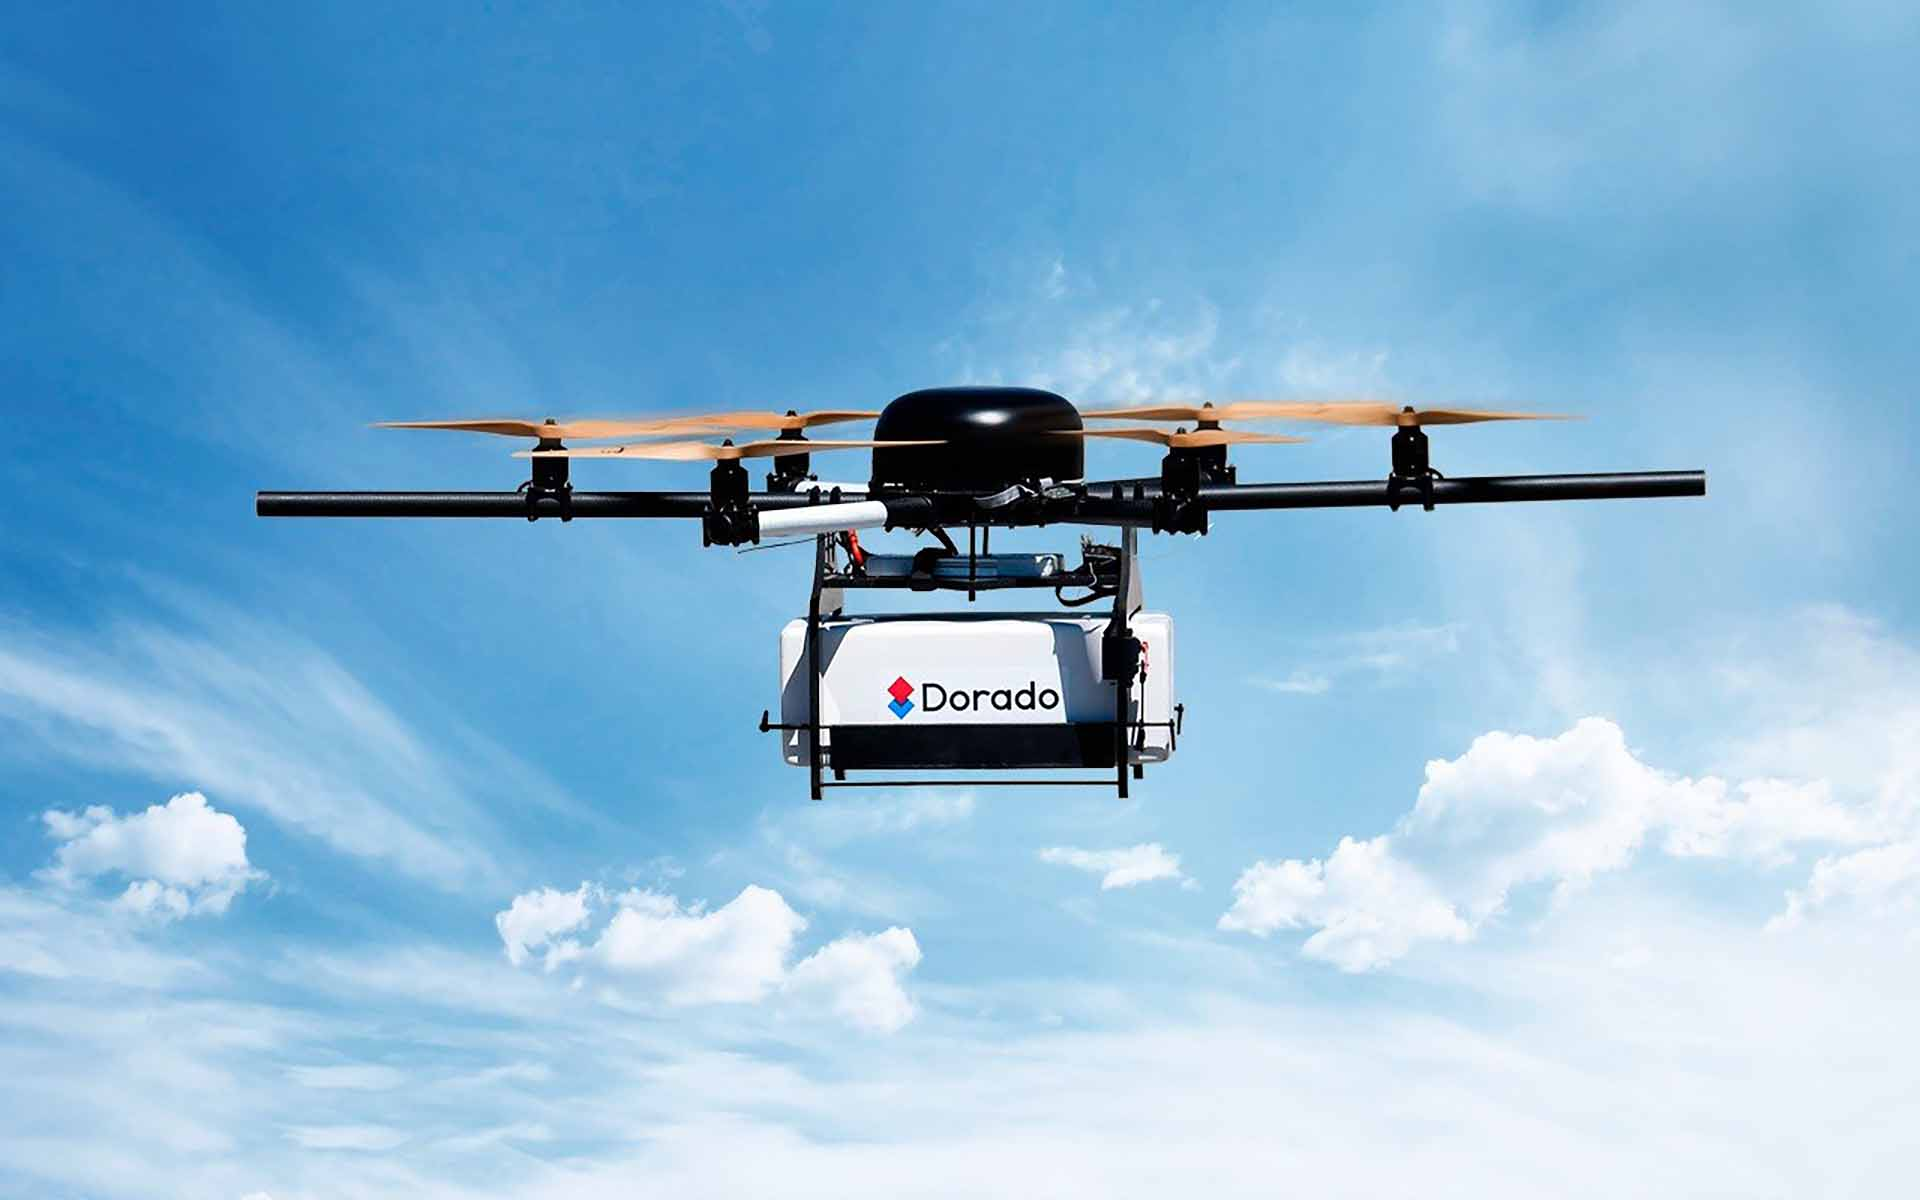 Dorado is Serious about Delivering Goods in 15 Minutes or Less by Drones